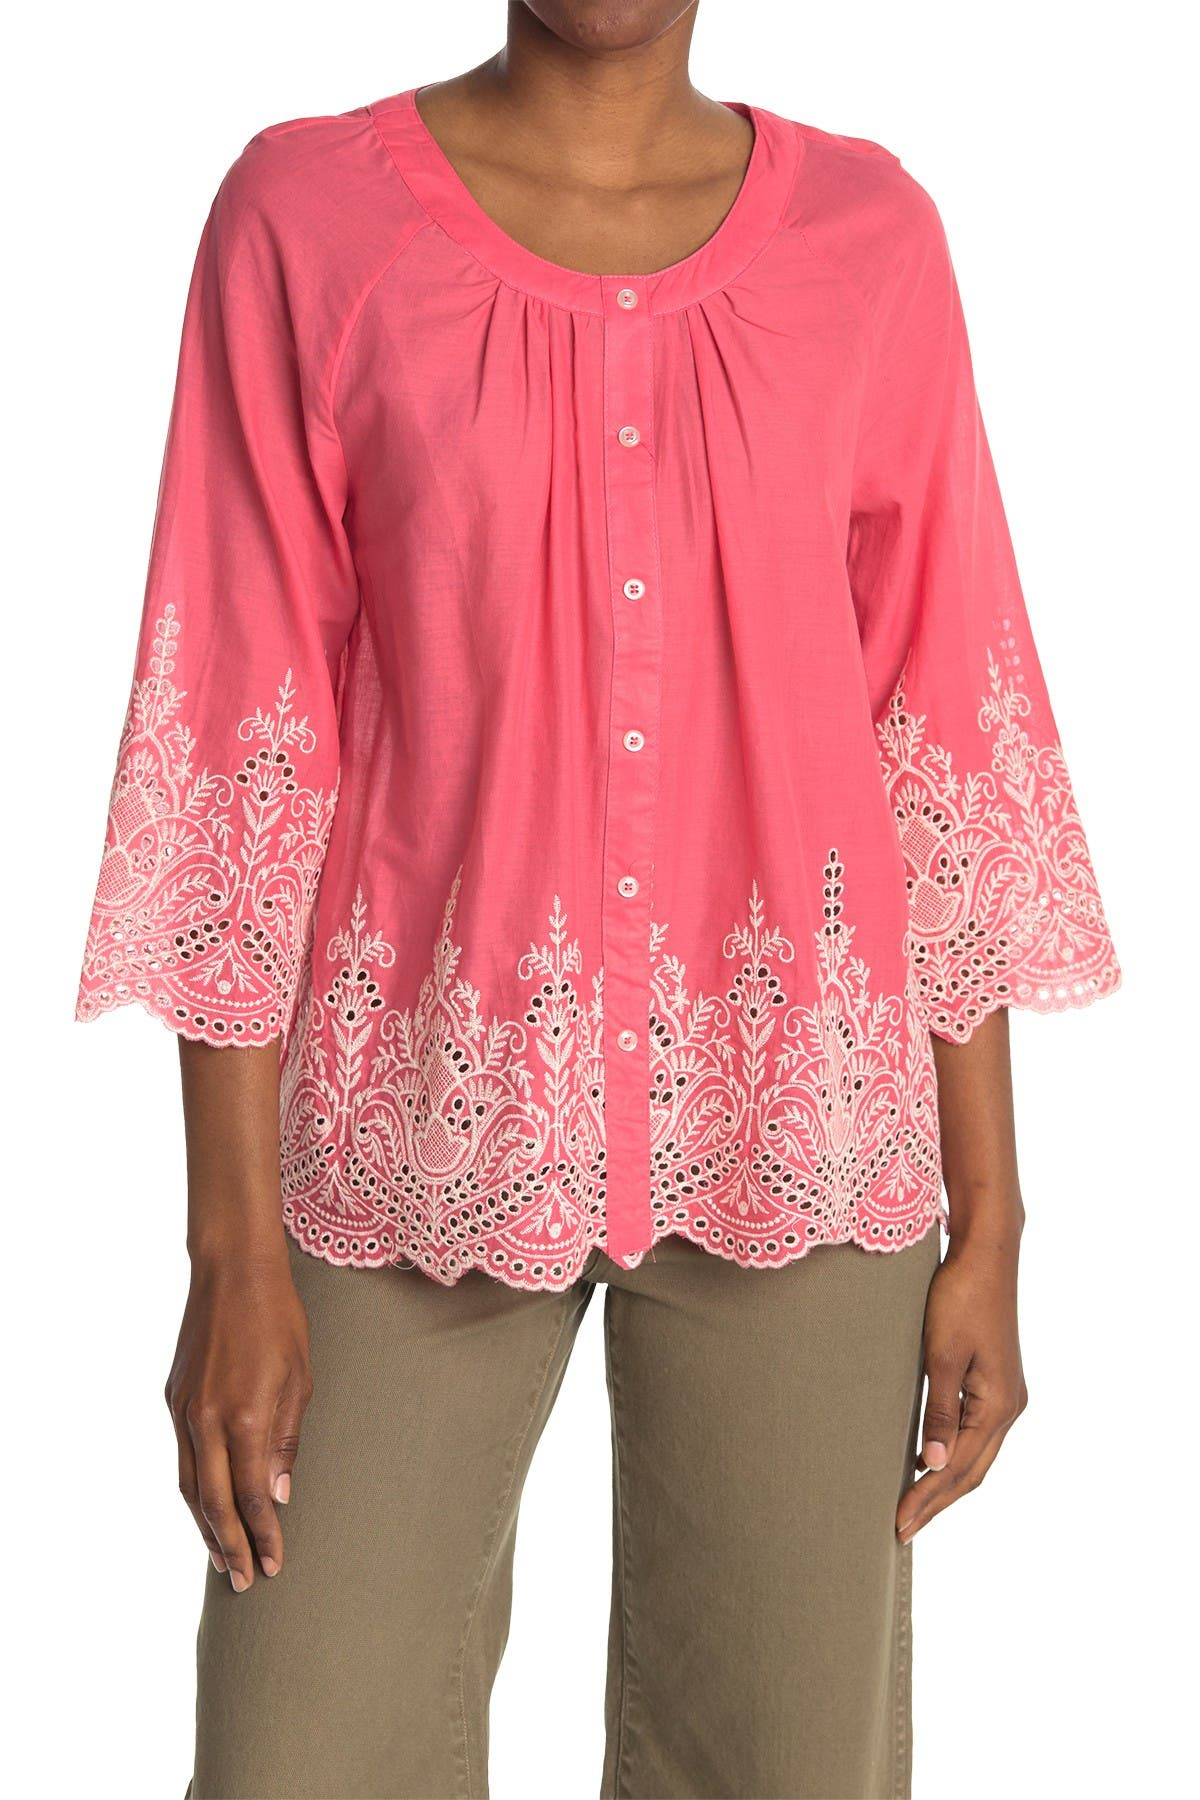 Image of Forgotten Grace Button Front 3/4 Sleeve Embroidered Blouse